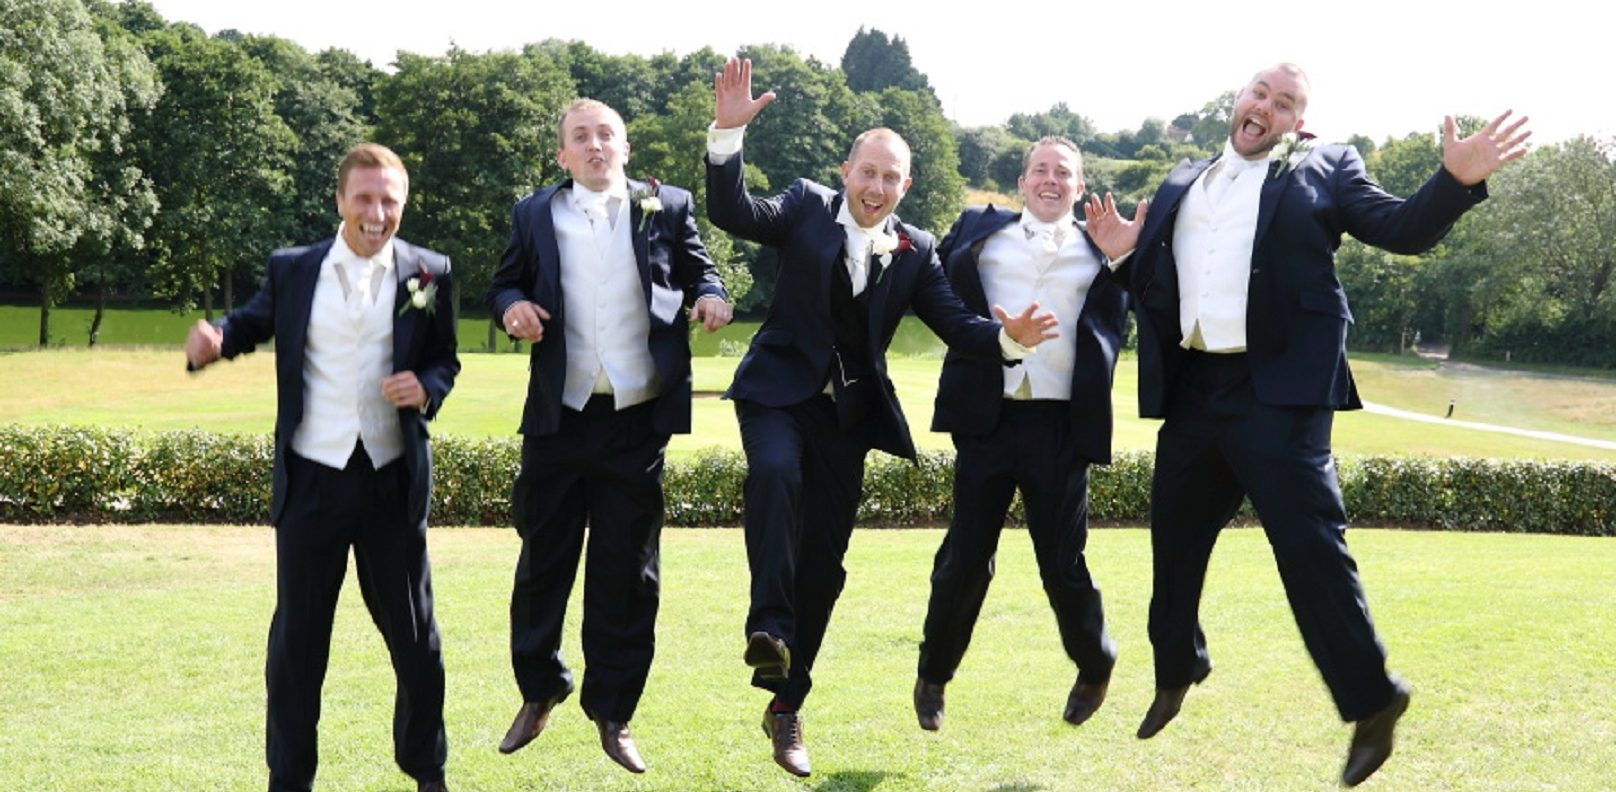 Wedding photo grooms party jumping